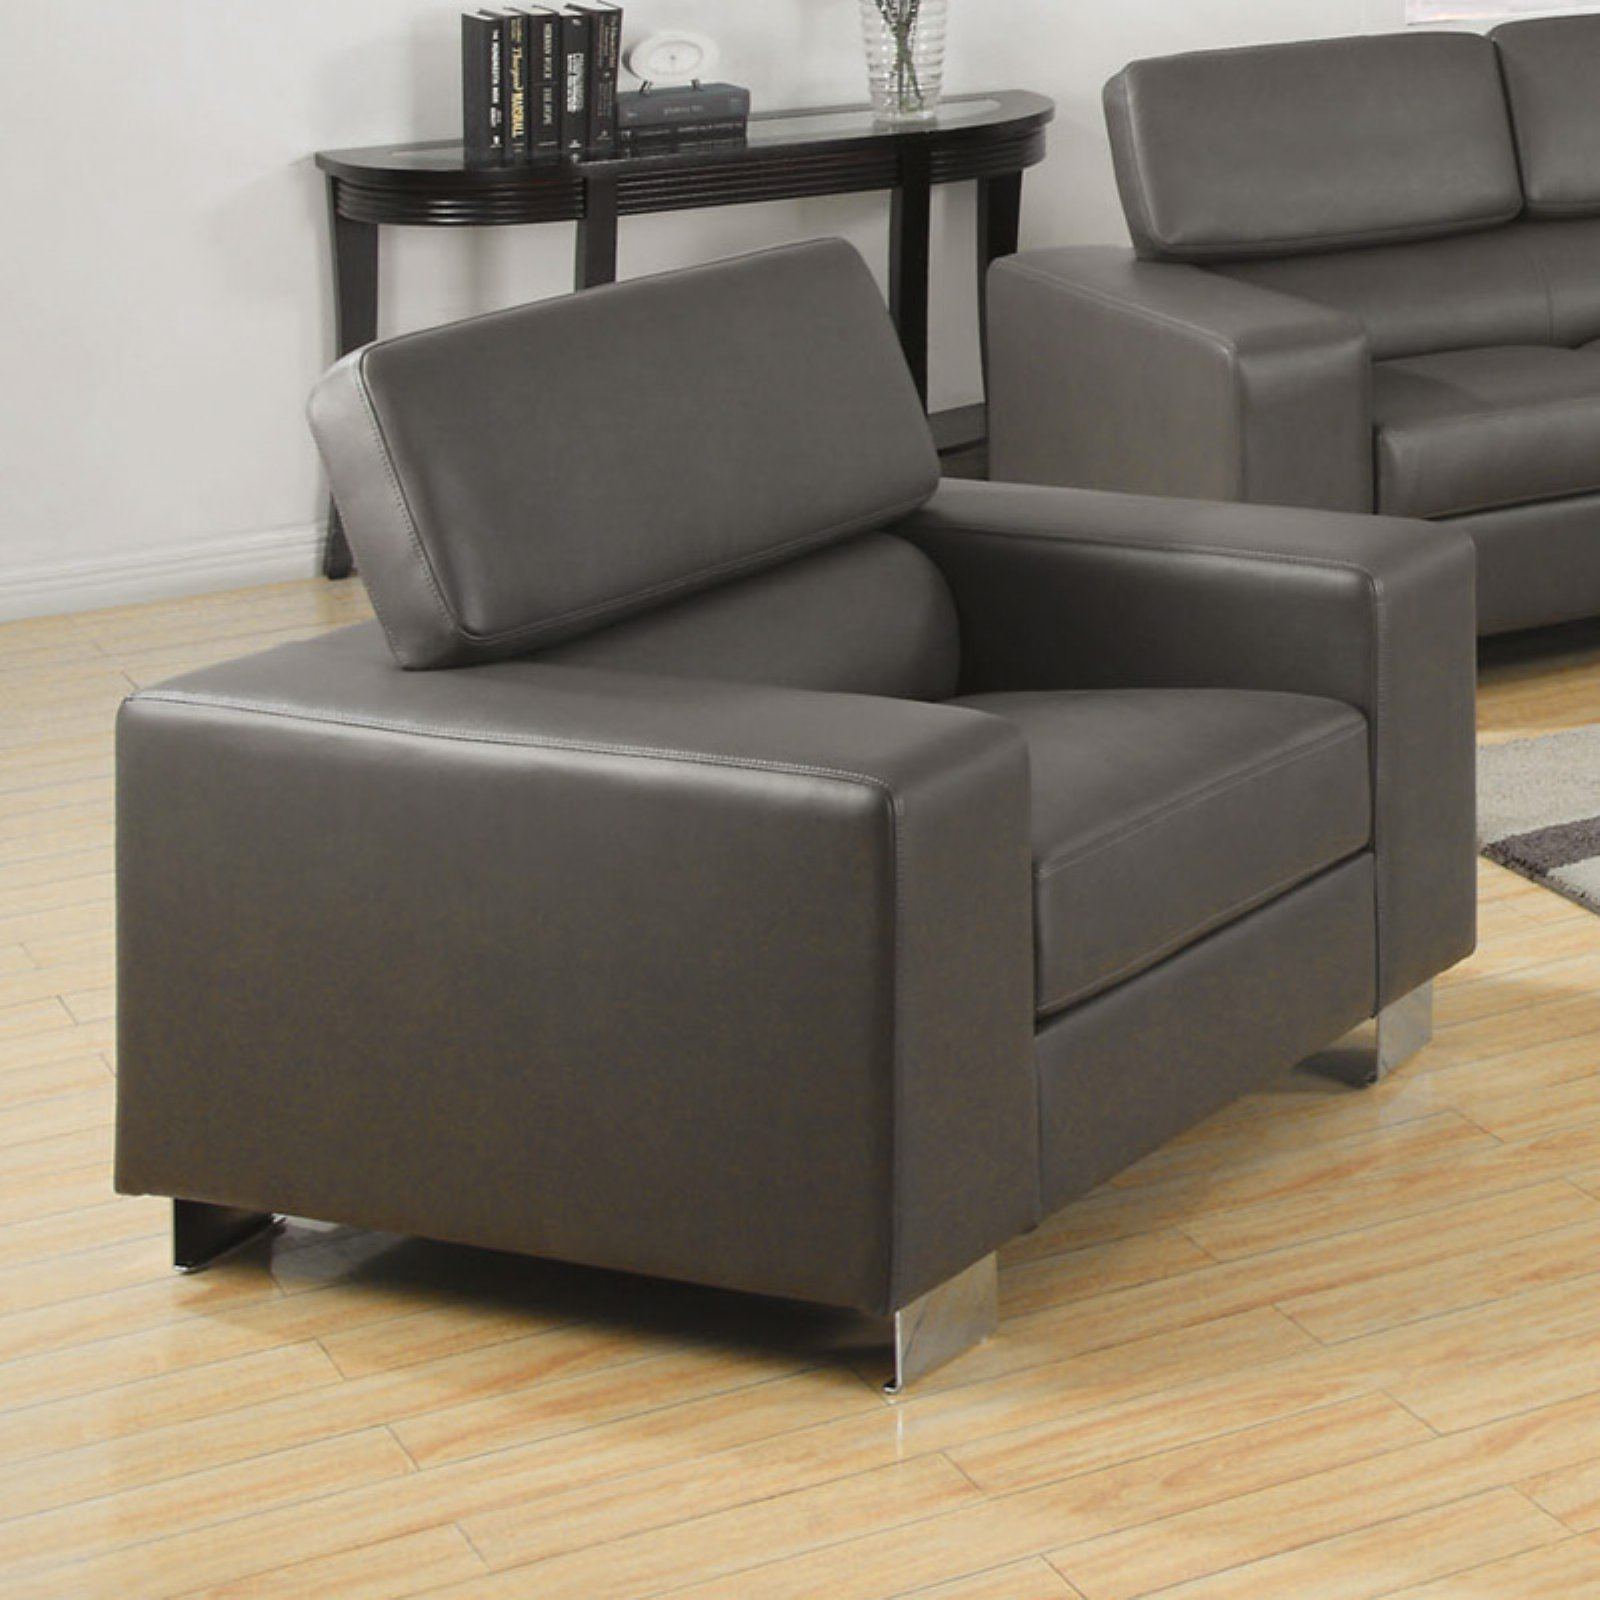 Furniture of America Lawrence Bonded Leather Match Chair